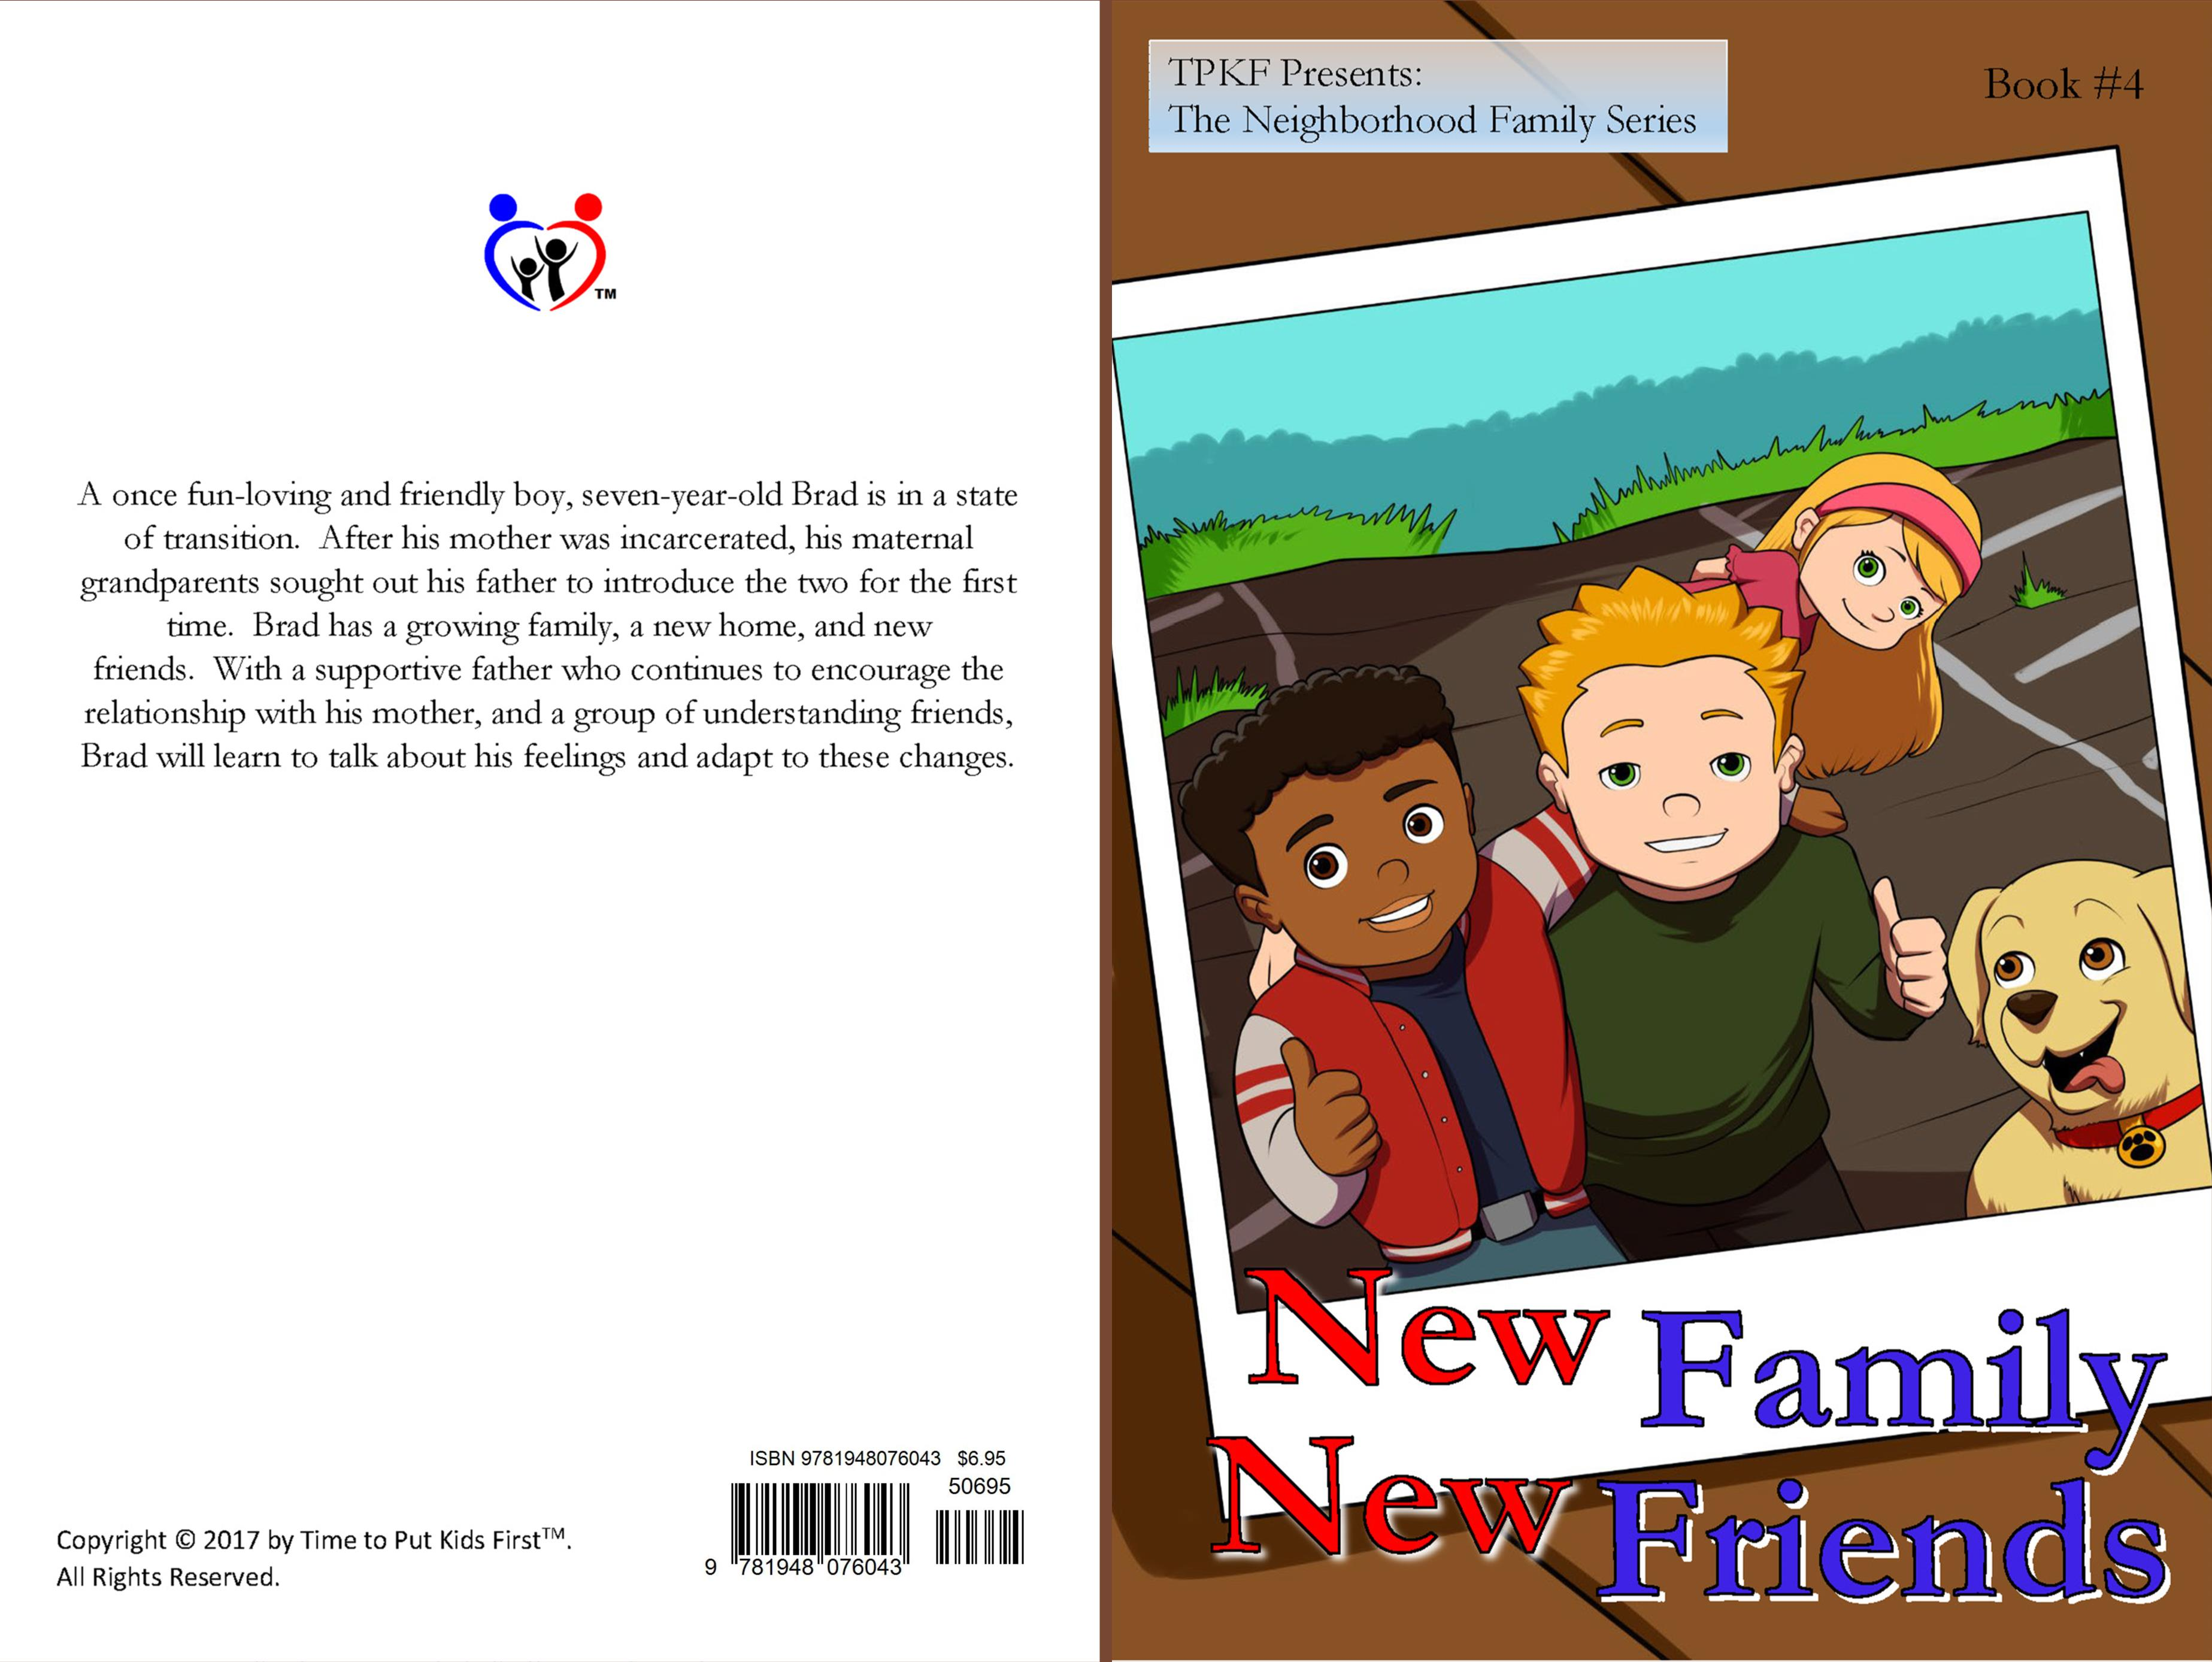 New Family, New Friends cover image